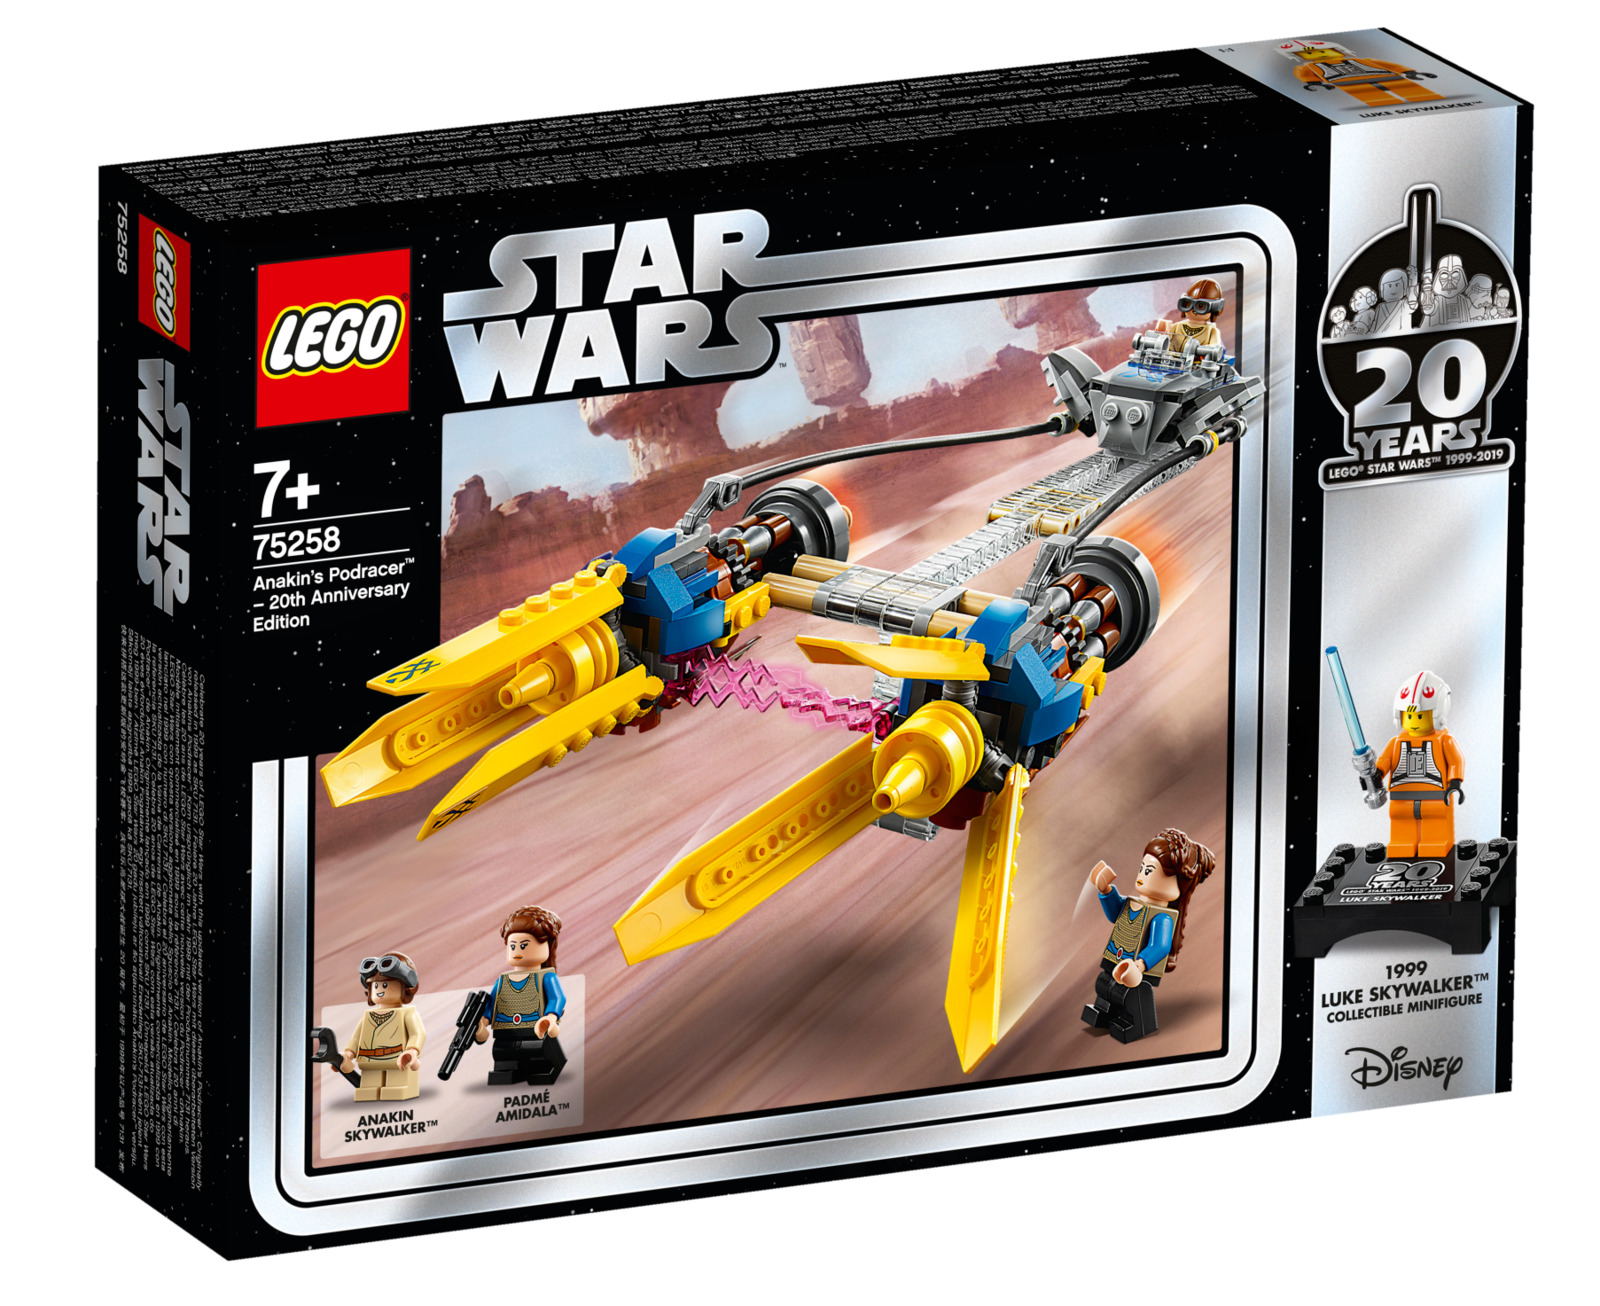 LEGO Star Wars: 20th Anniversary Edition - Anakin's Podracer (75258) image